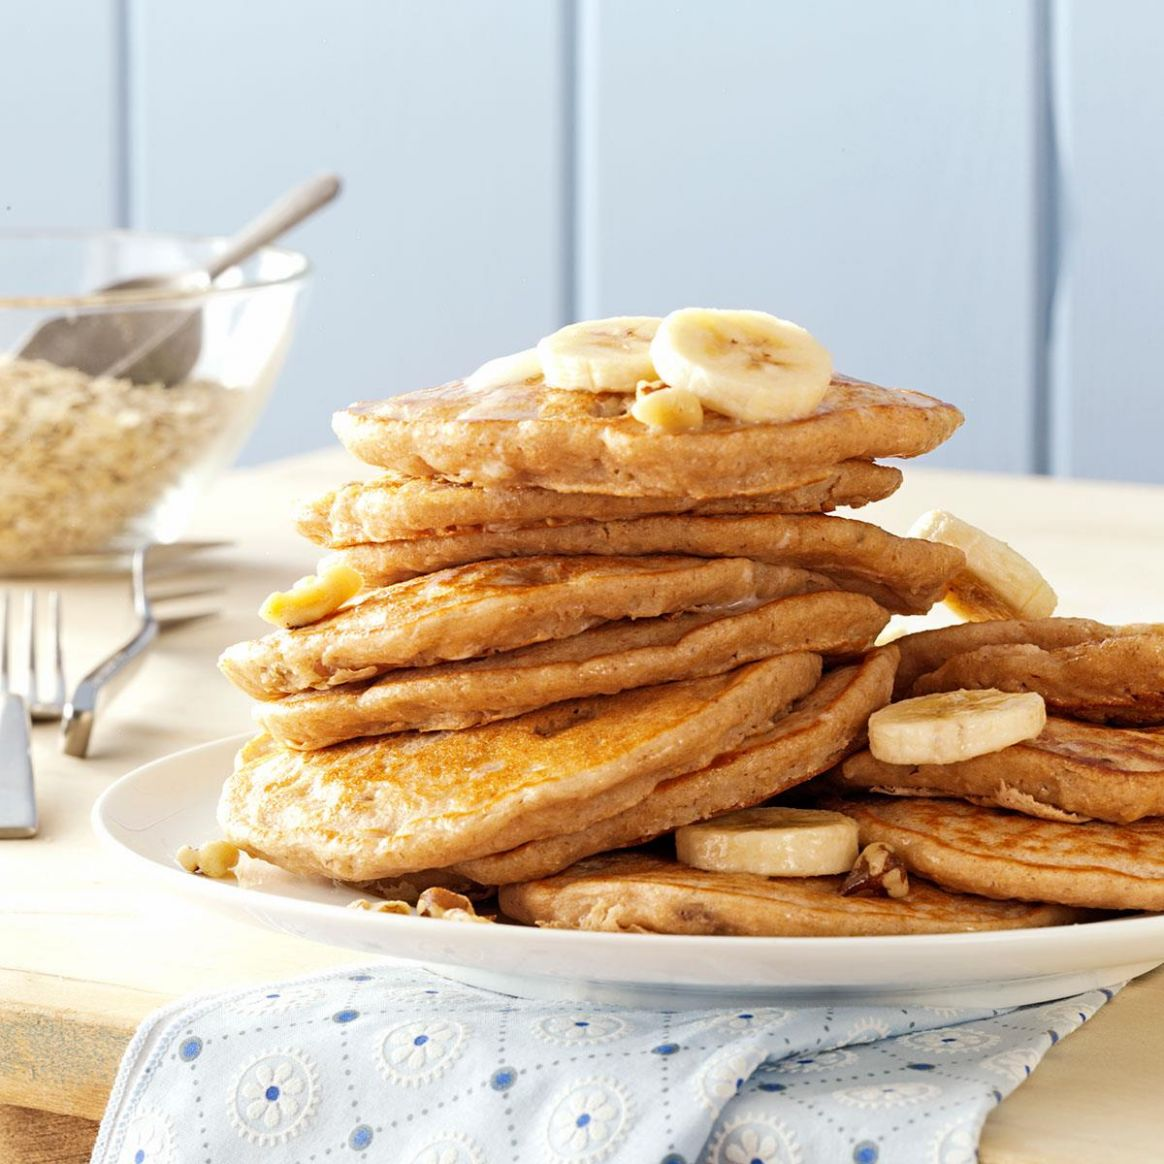 Banana Oatmeal Pancakes - Breakfast Recipes Using Bananas